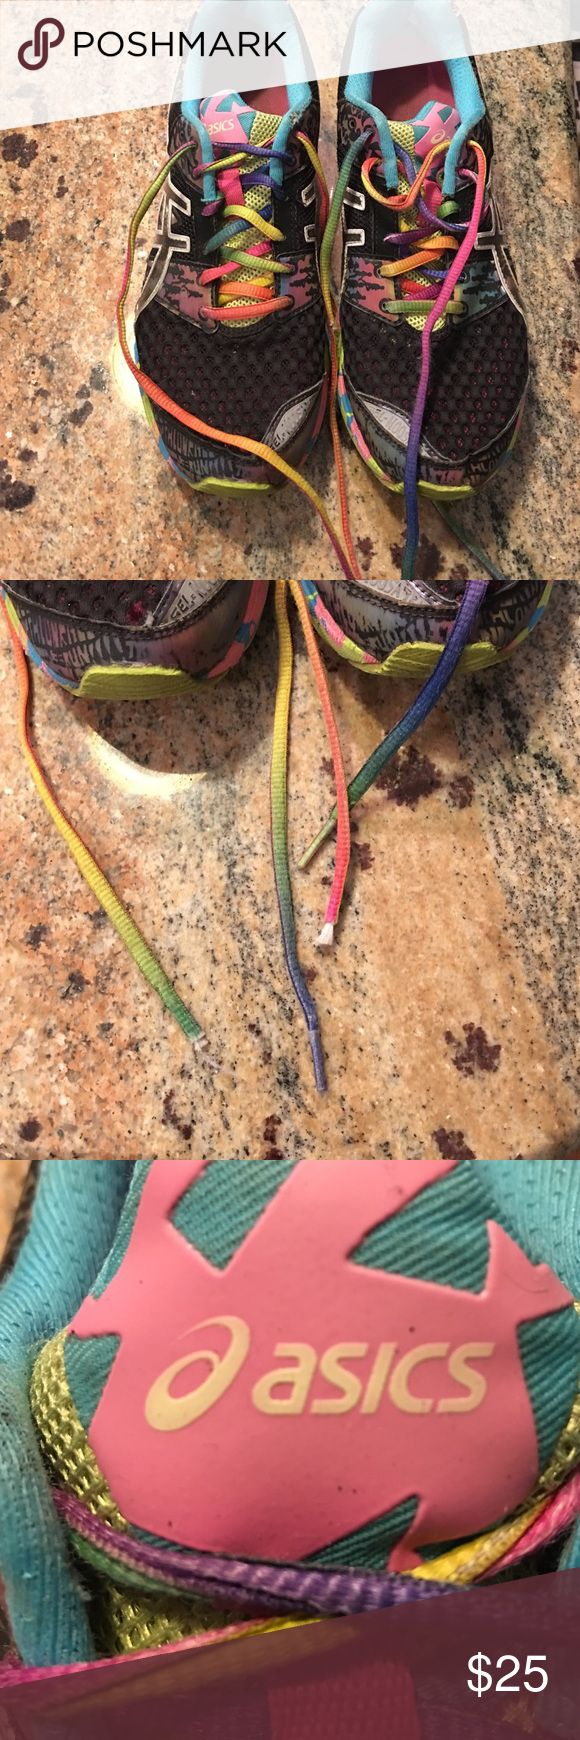 Asics sneakers Womens Asics Gel Noosa Tri 8 Paint Splatter Athletic Shoes T3...   style: Active. Size width: medium. Have been worn a good amount! Asics Shoes Sneakers